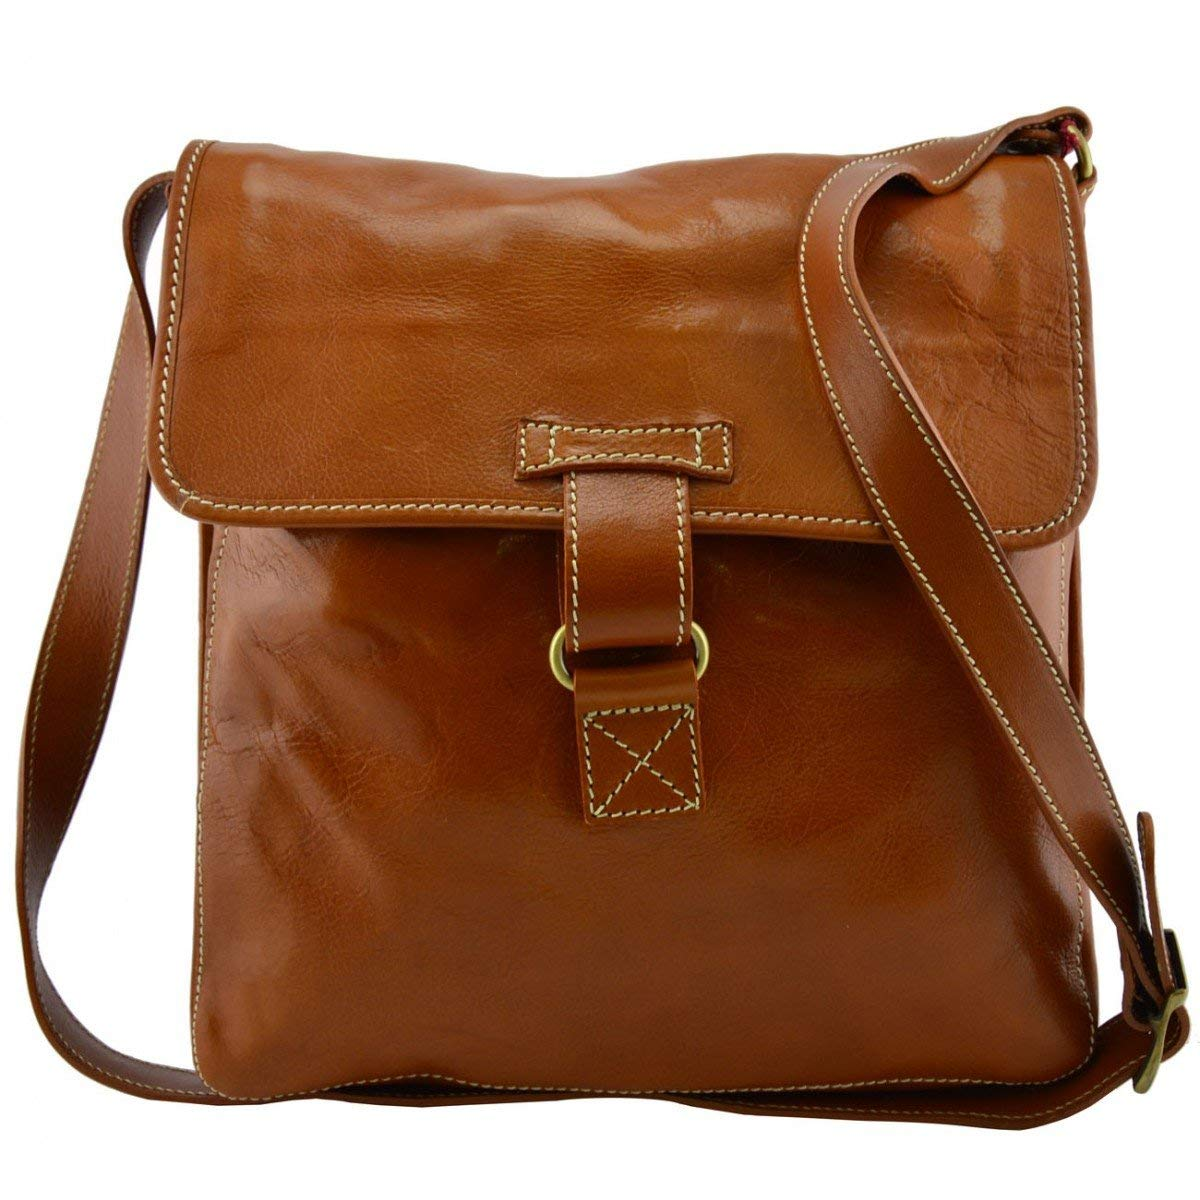 Dream Leather Bags Made in Italy Genuine Leather Genuine Leather Crossbody Bag Color Cognac